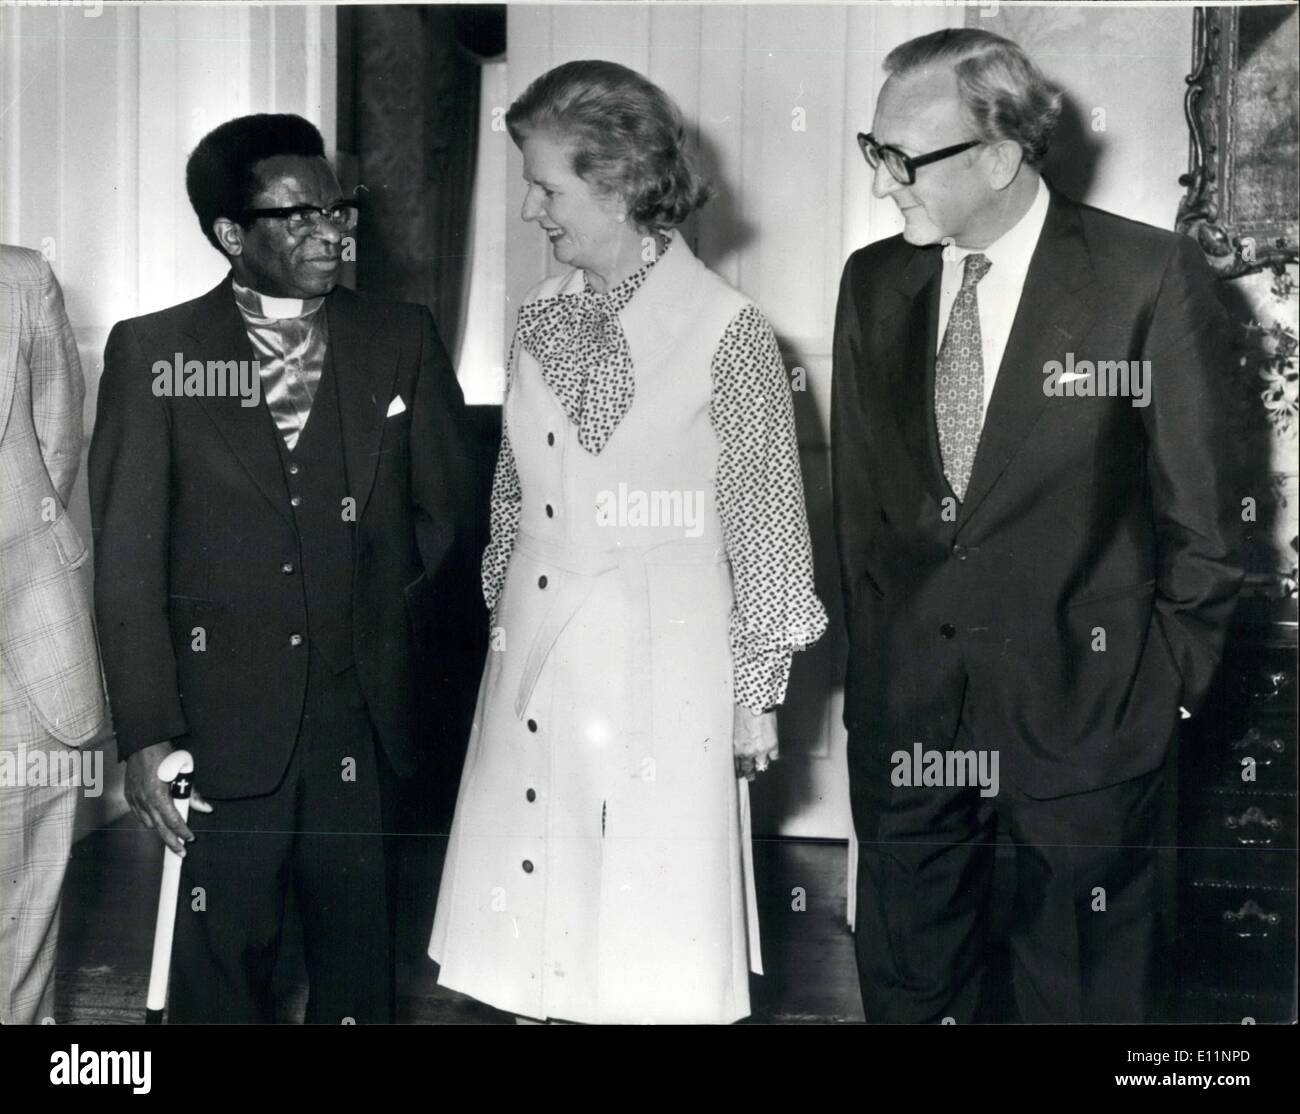 Jul. 07, 1979 - Muzorewa meets Mrs Thatcher. Bishop Abel Musorewa had a meeting this afternoonat No 10 downing street with the Prime Minister Mrs Thatcher .The Prime Minister of Zimbabwe is in Britain to ask the British Government to lift sanctions from his country. Photo shows Bishop Muzorewa during his meeting with Mrs Thatcher and the British Foreign Secretary Lord Carrington at No 10 today. - Stock Image